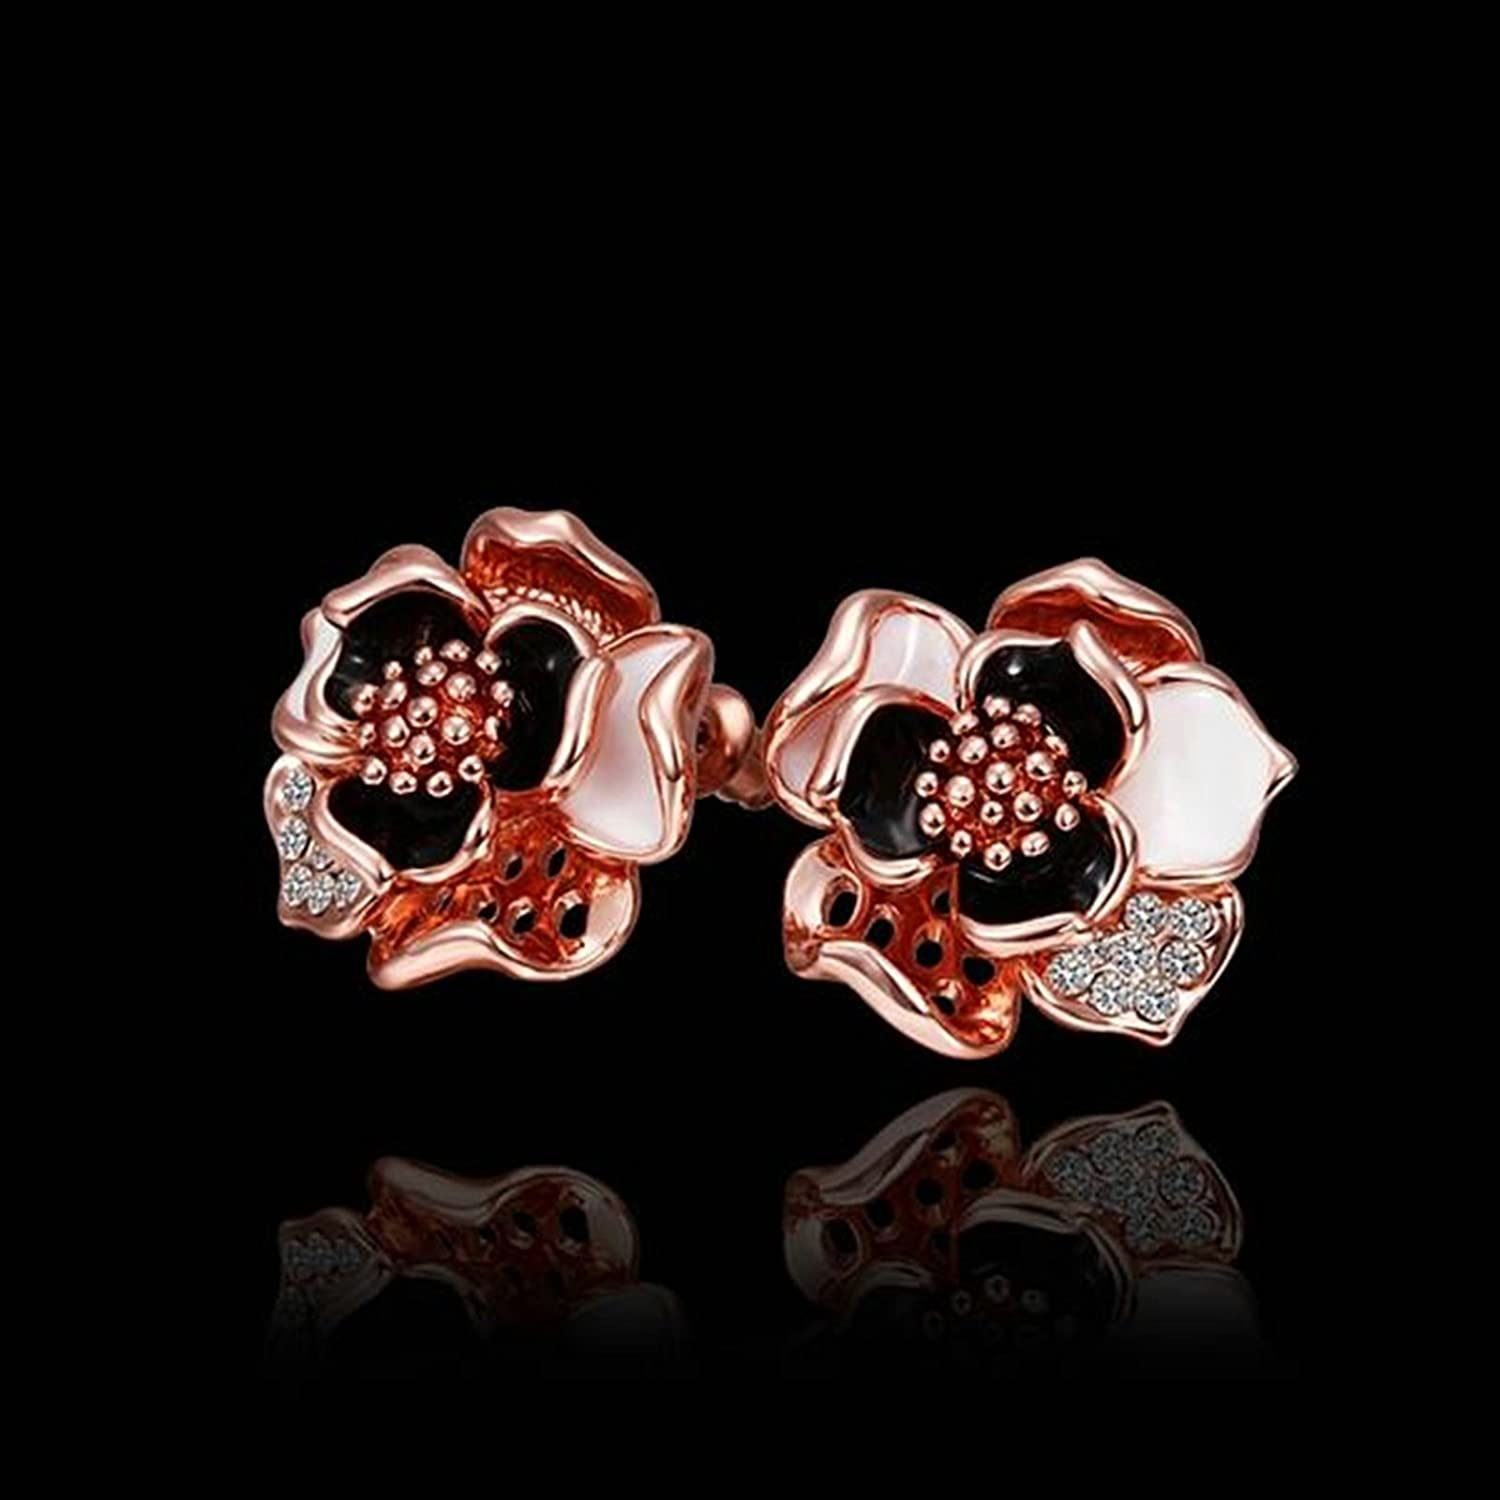 AmDxD Jewelry Silver Plated Stud Earrings for Women Blossom Peony 19X18MM